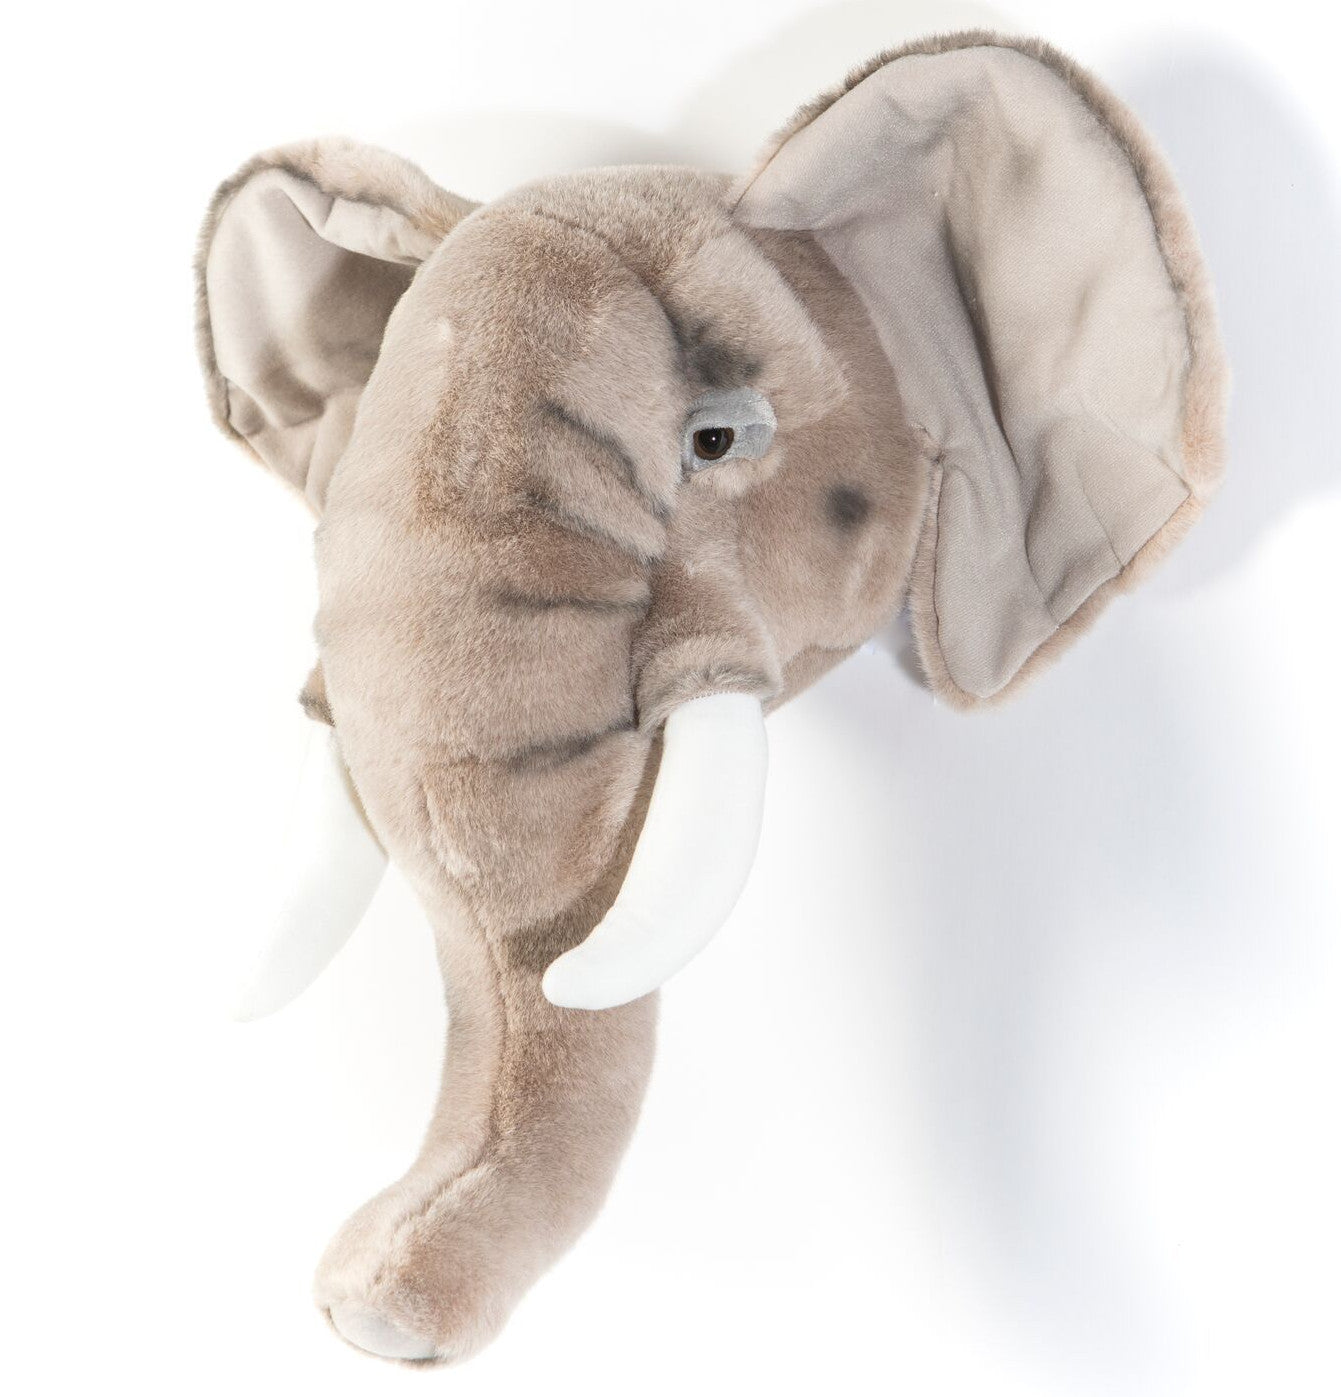 Wild and Soft George the elephant head plush wall decor.